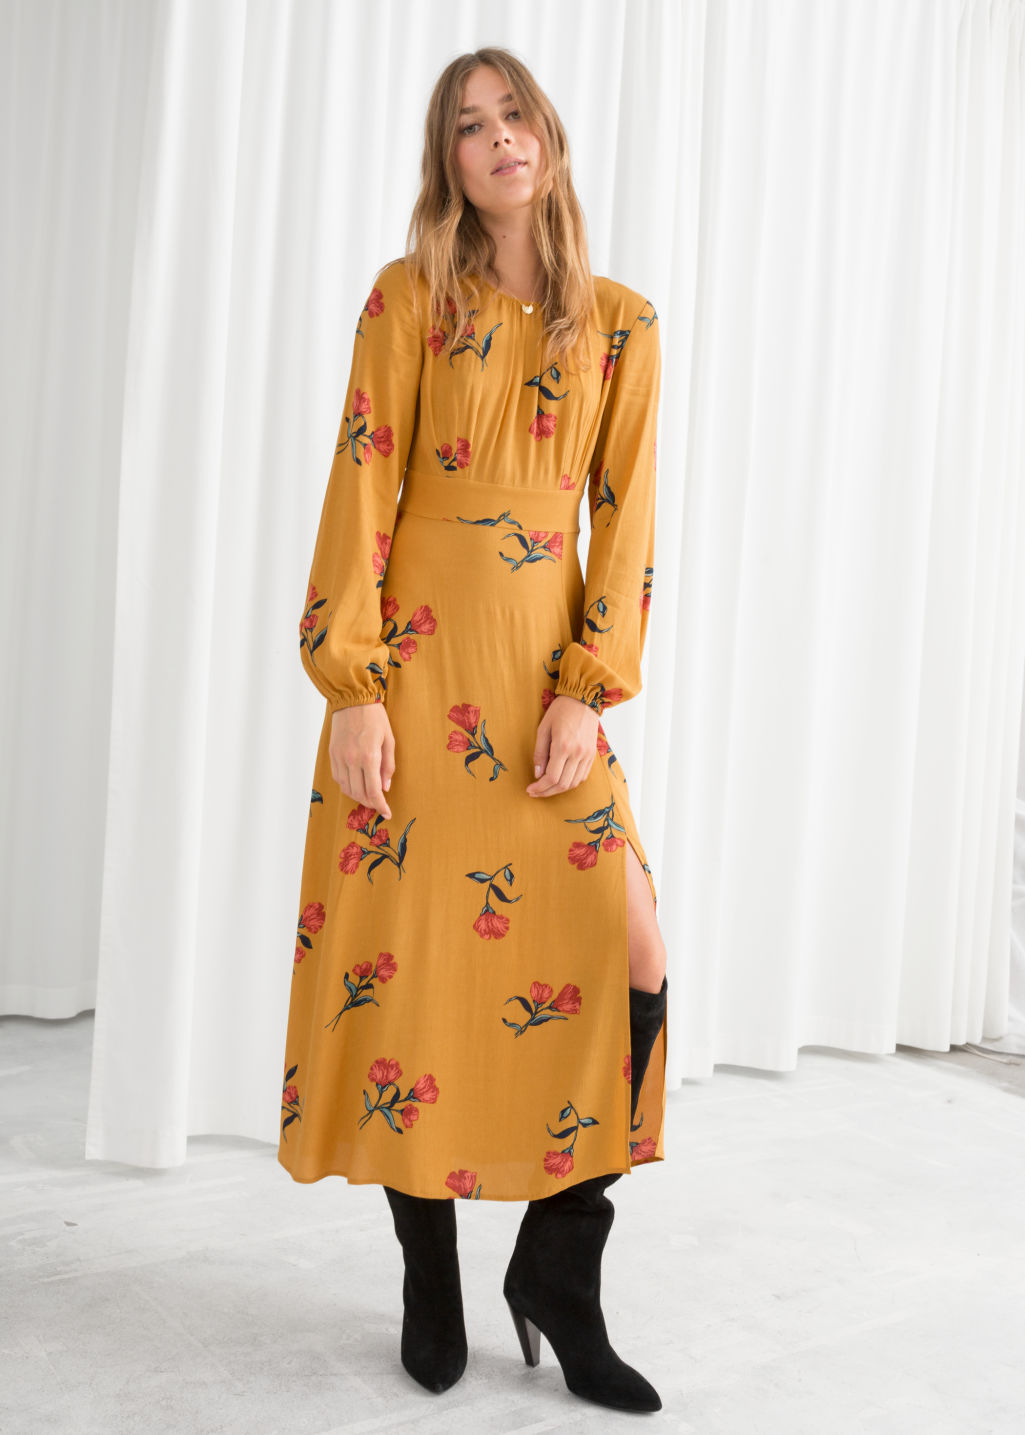 21017c3cbf4 Floral Long Sleeve Midi Dress - Yellow Floral - Midi dresses -   Other ...